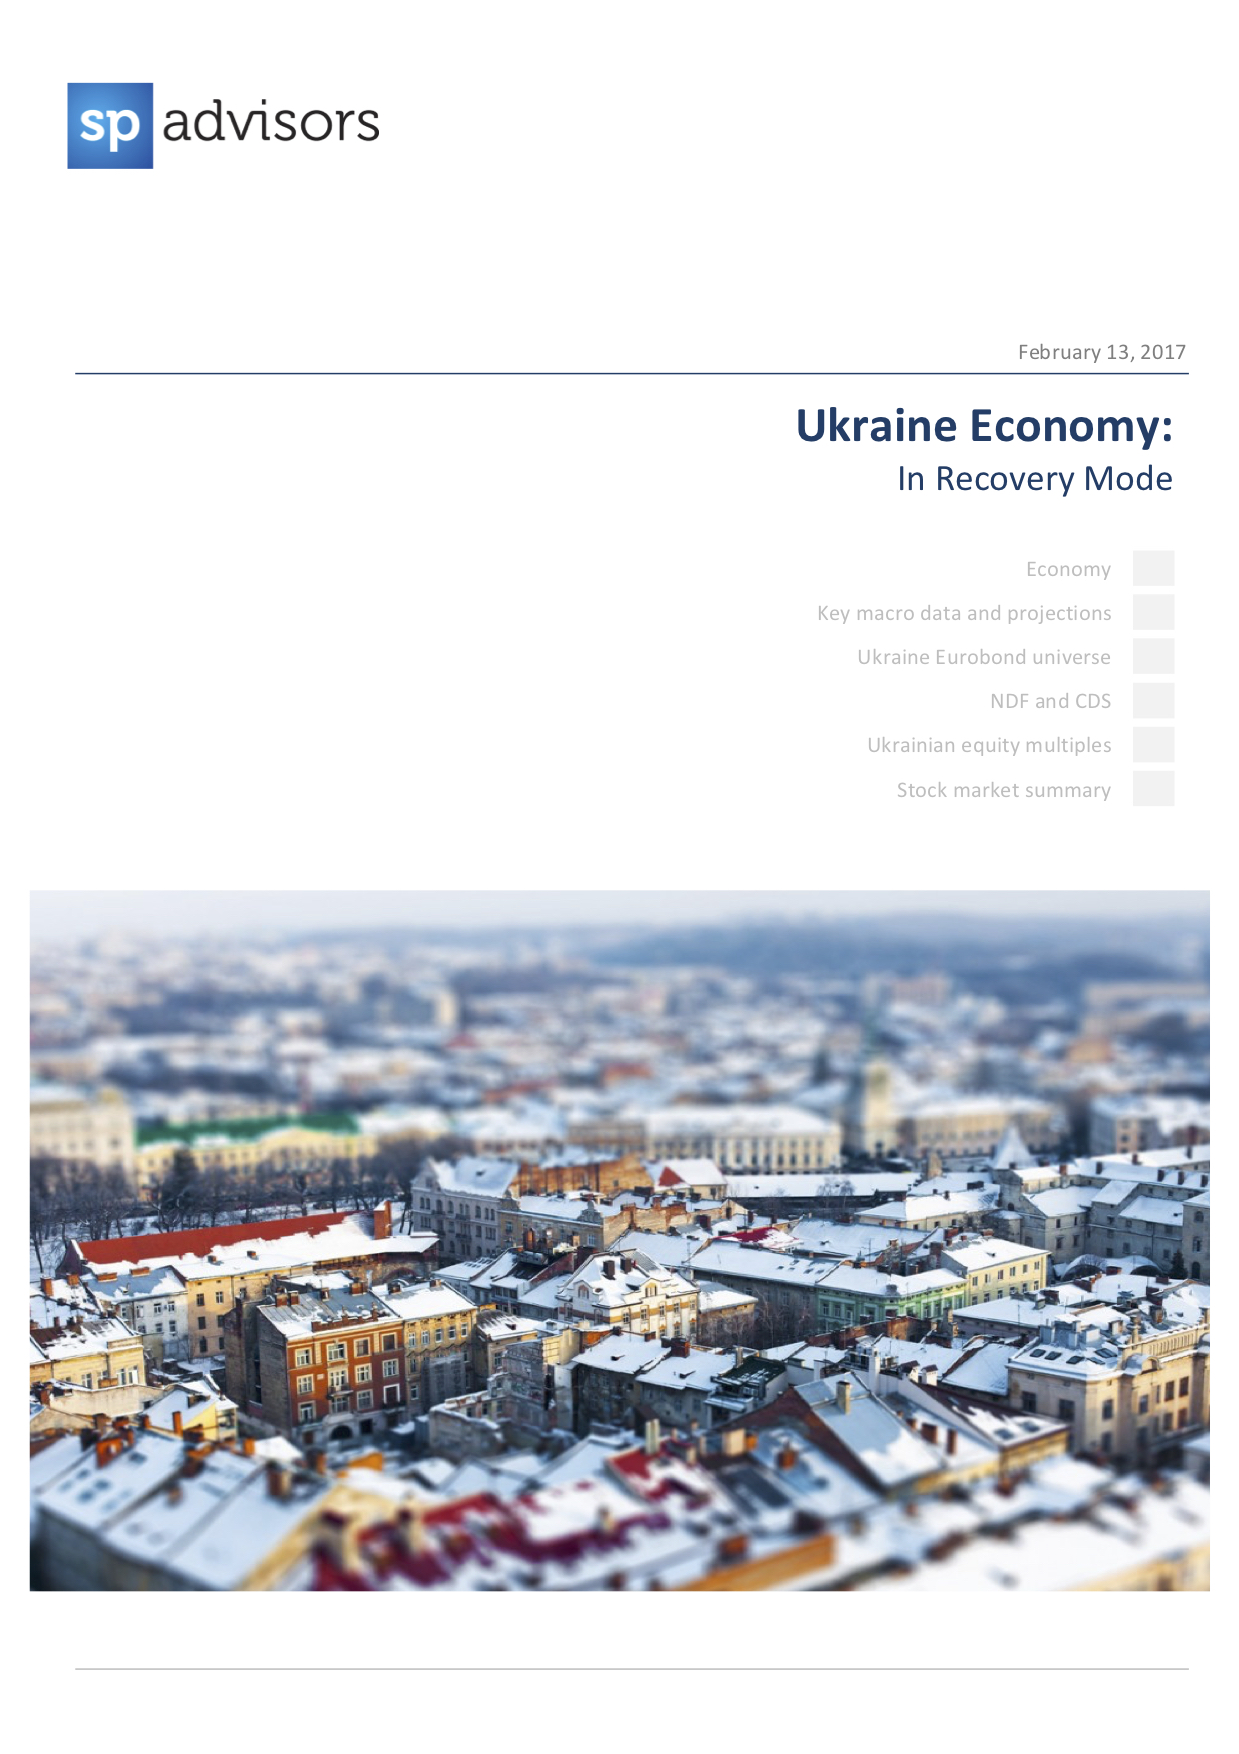 Ukraine Economy: In Recovery Mode. February 13, 2017